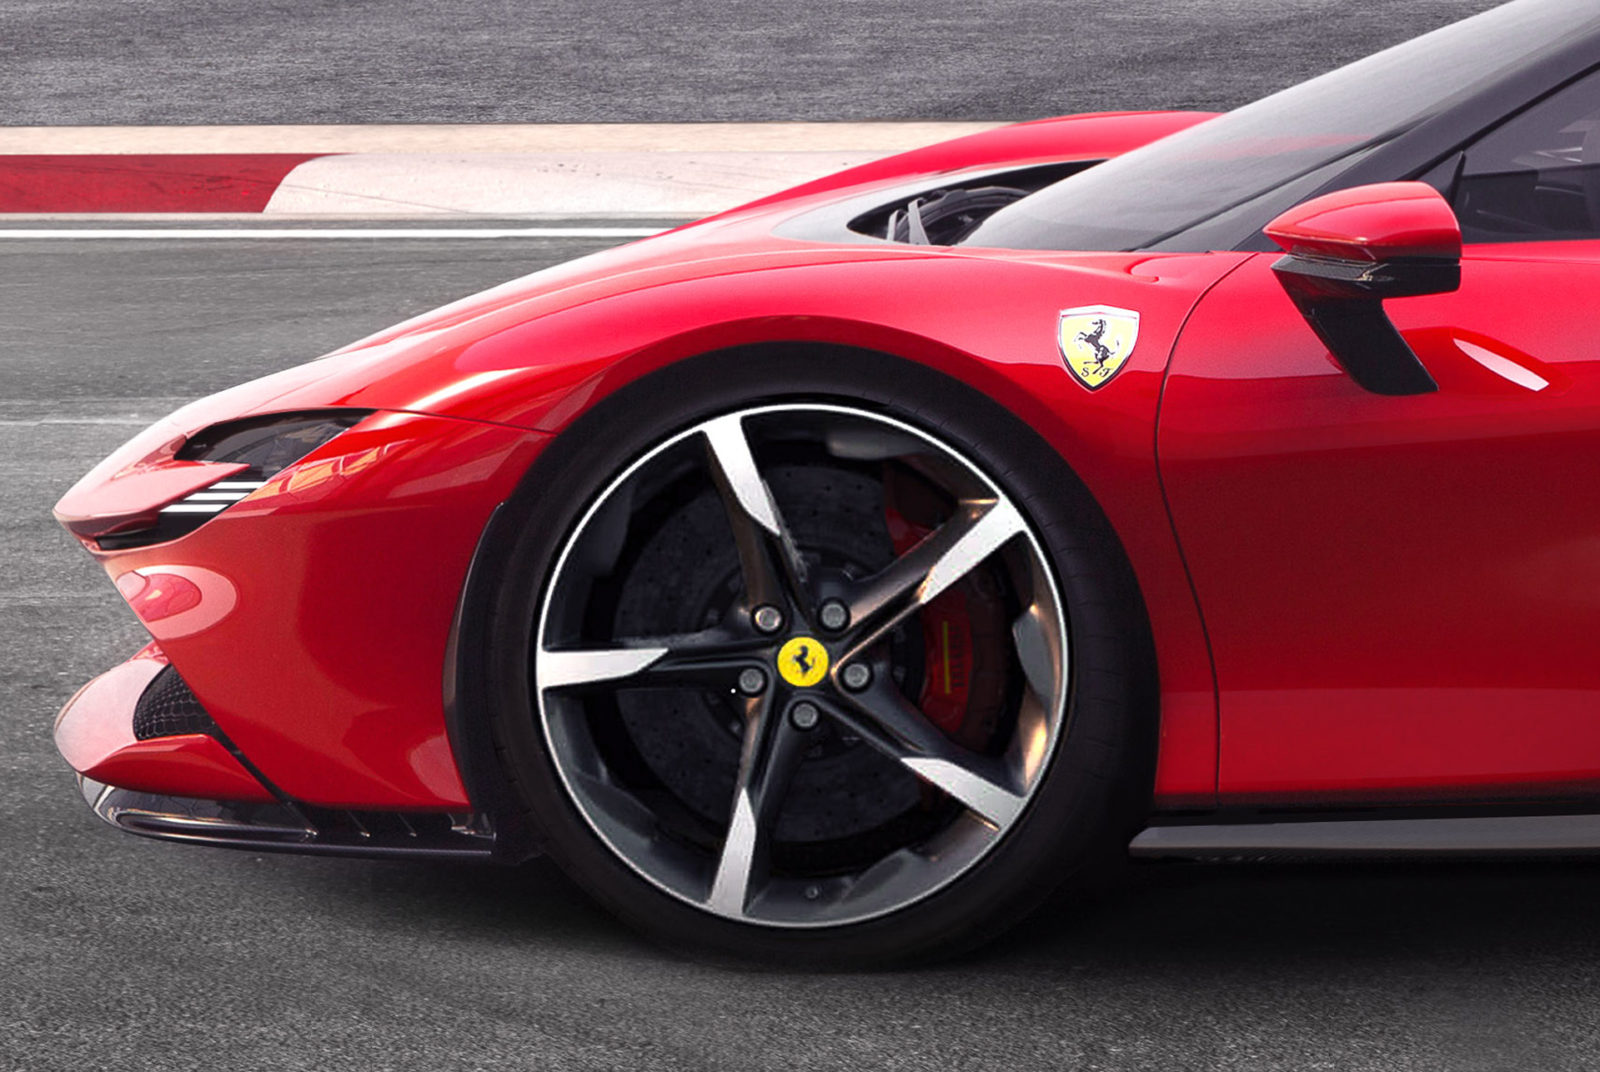 first-details-on-ferrari's-v-6-hybrid-supercar